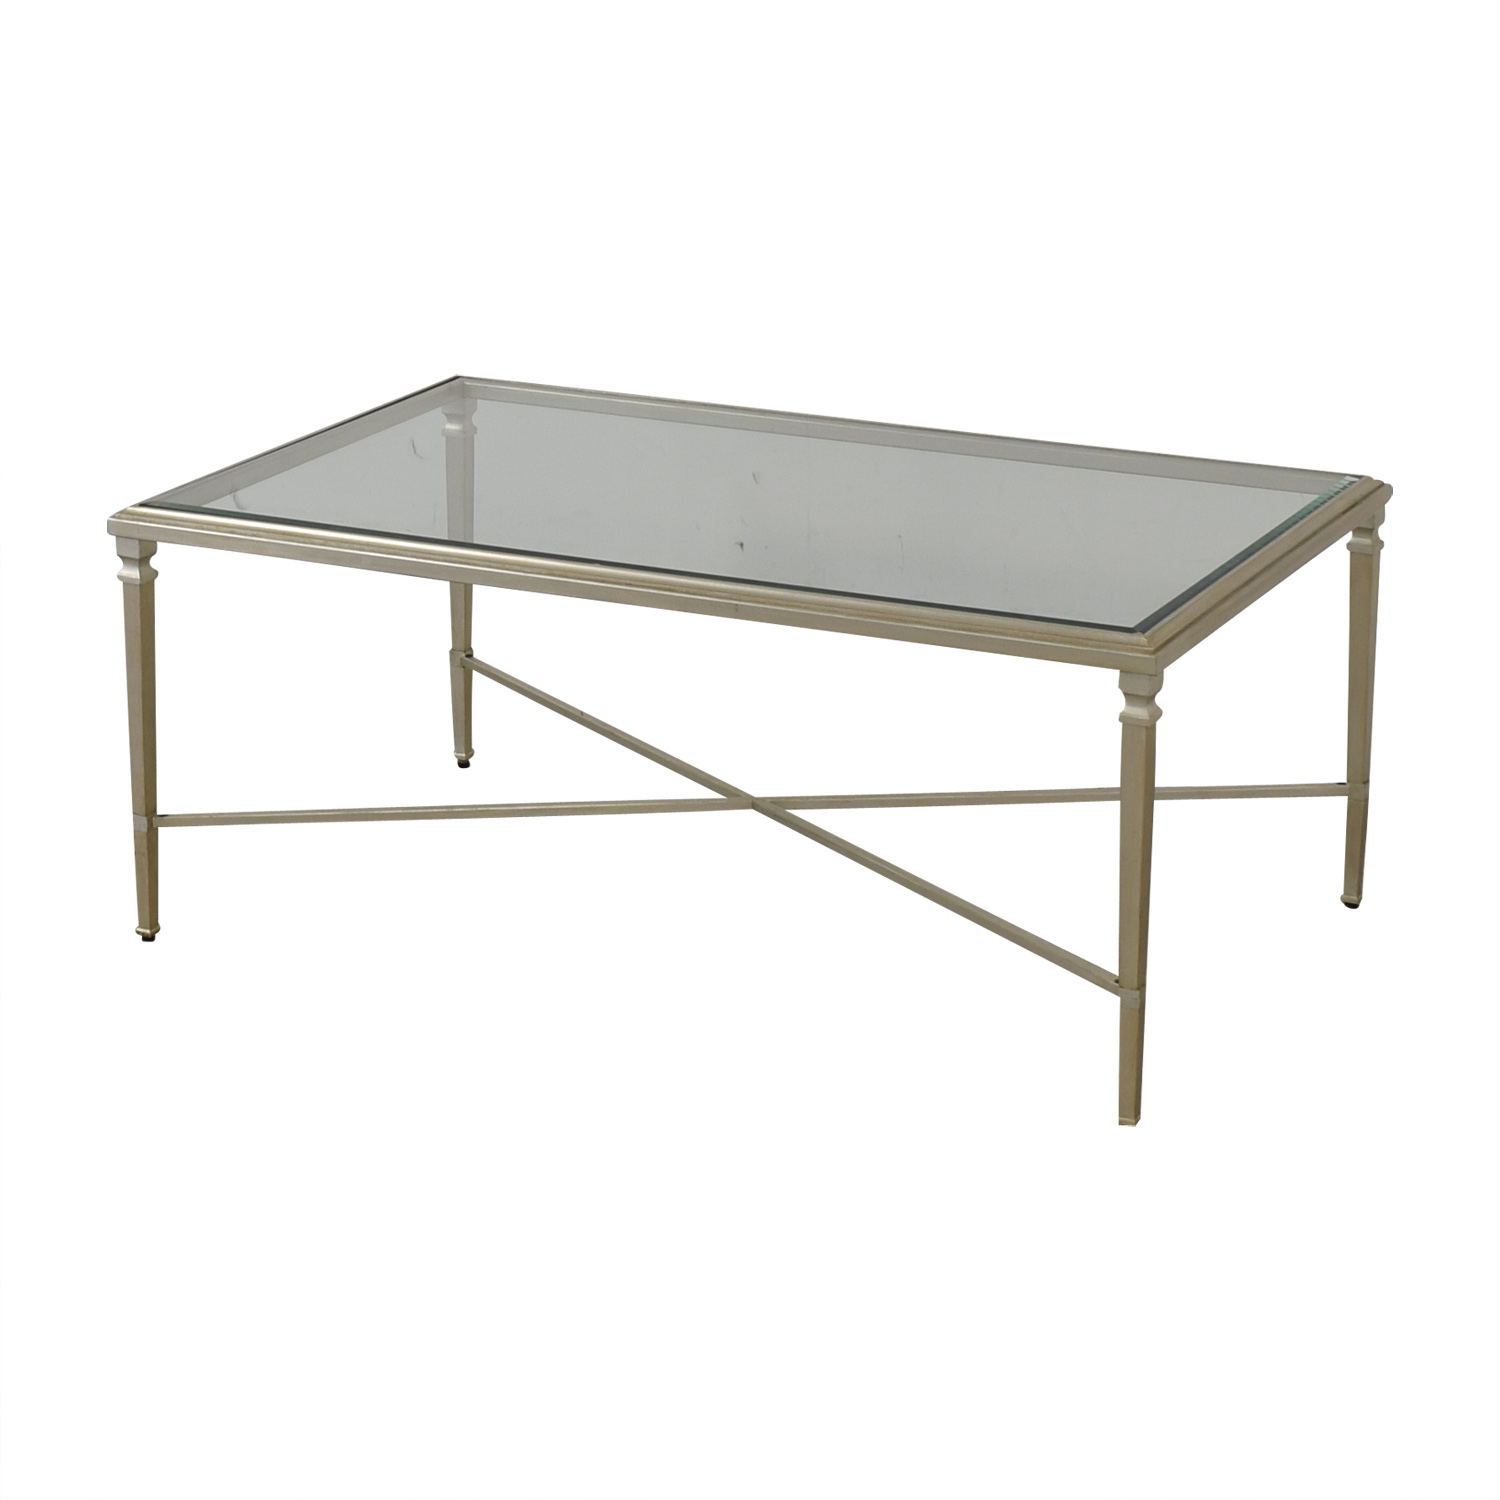 Ethan Allen Heron Coffee Table / Tables